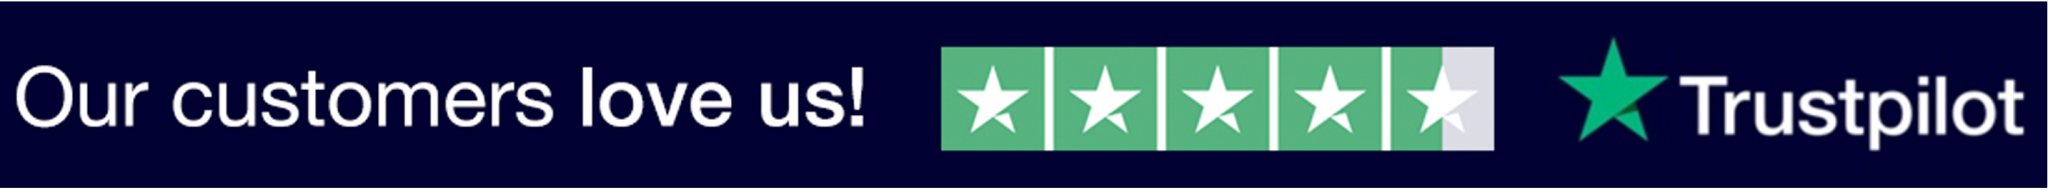 trustpilot in footer edit.png